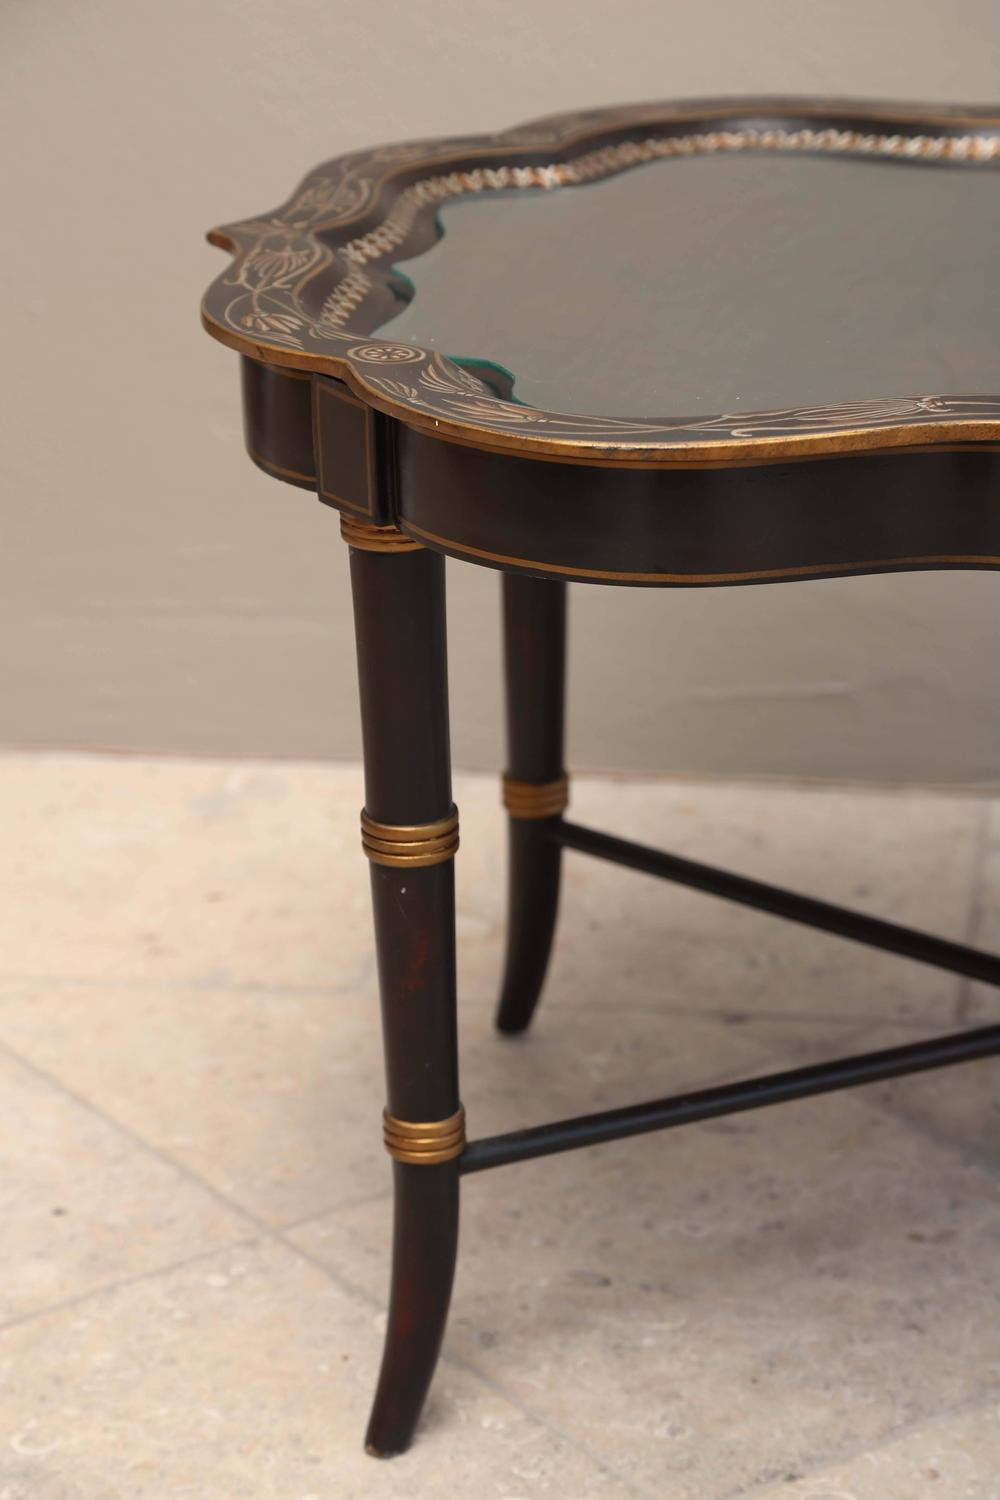 Charming Maitland Smith Hand Painted Ebonized Coffee Table For Sale At 1stdibs